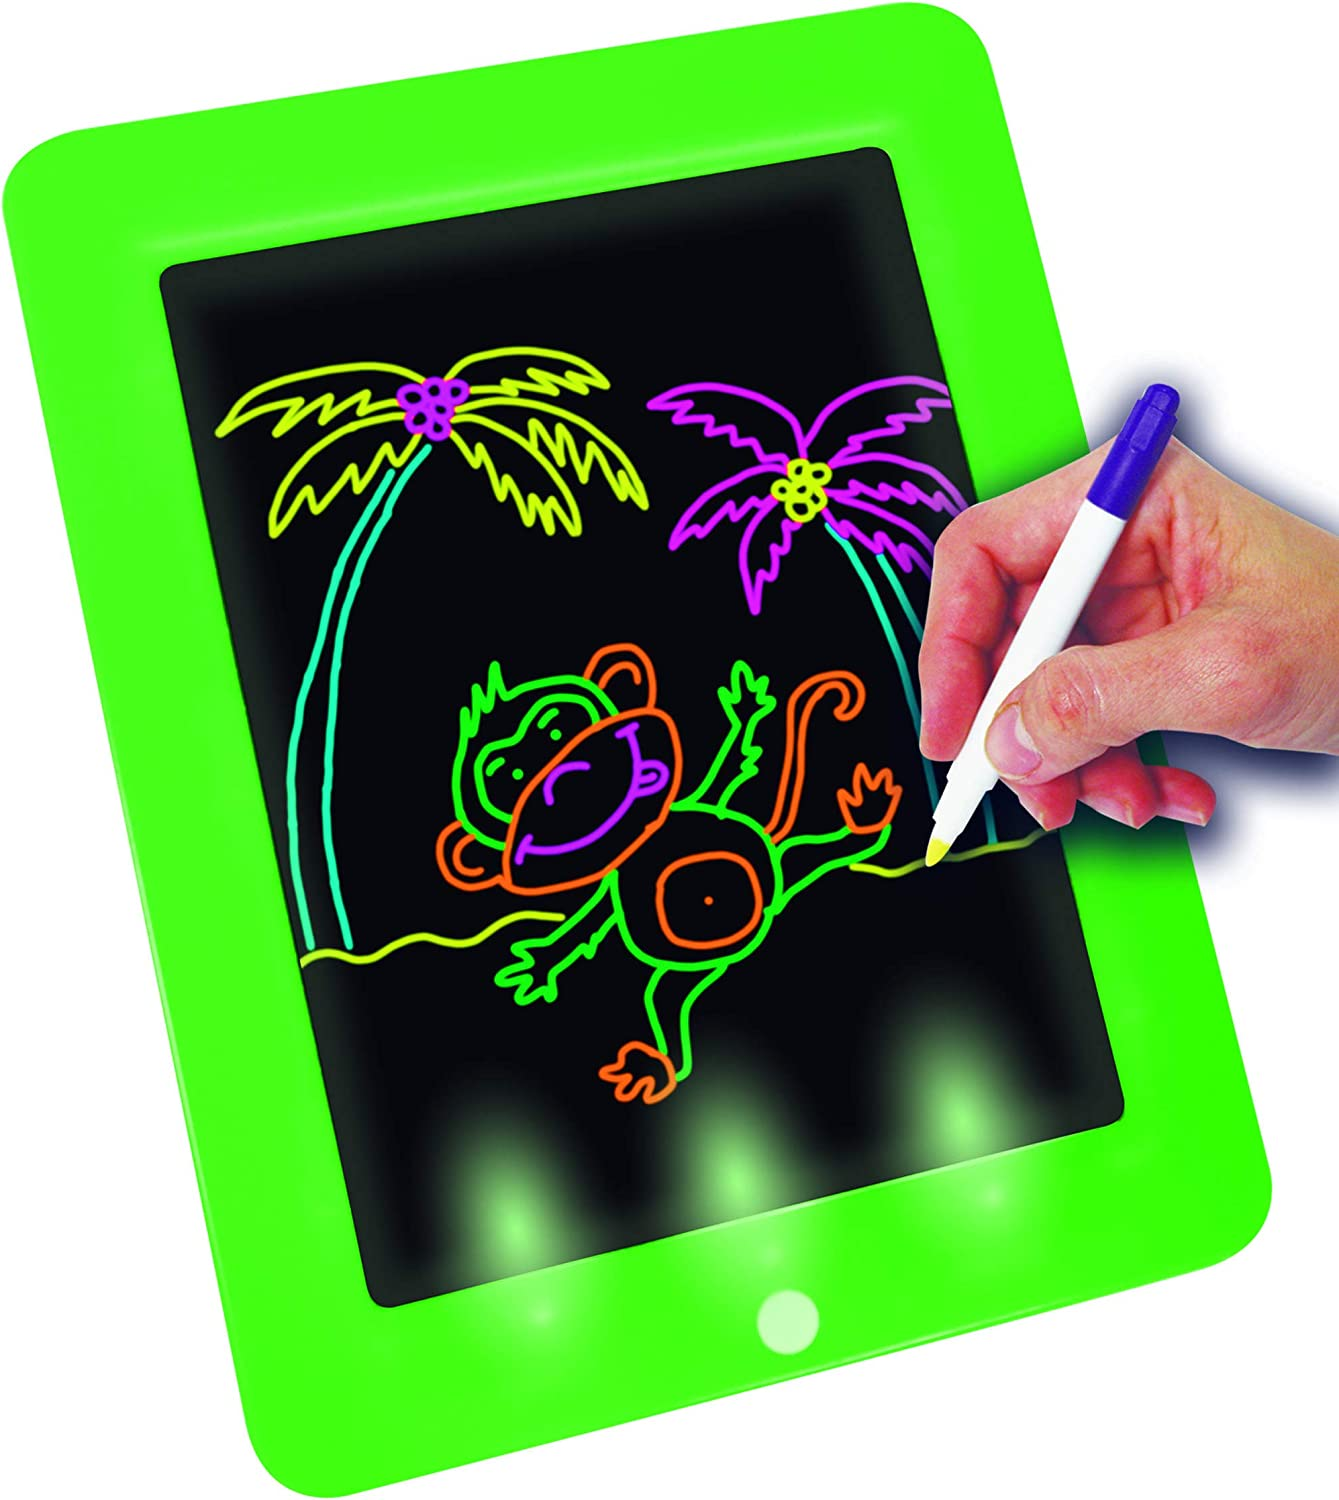 New product type Starlyf OFFicial site 47275 Fantastic Green Pad